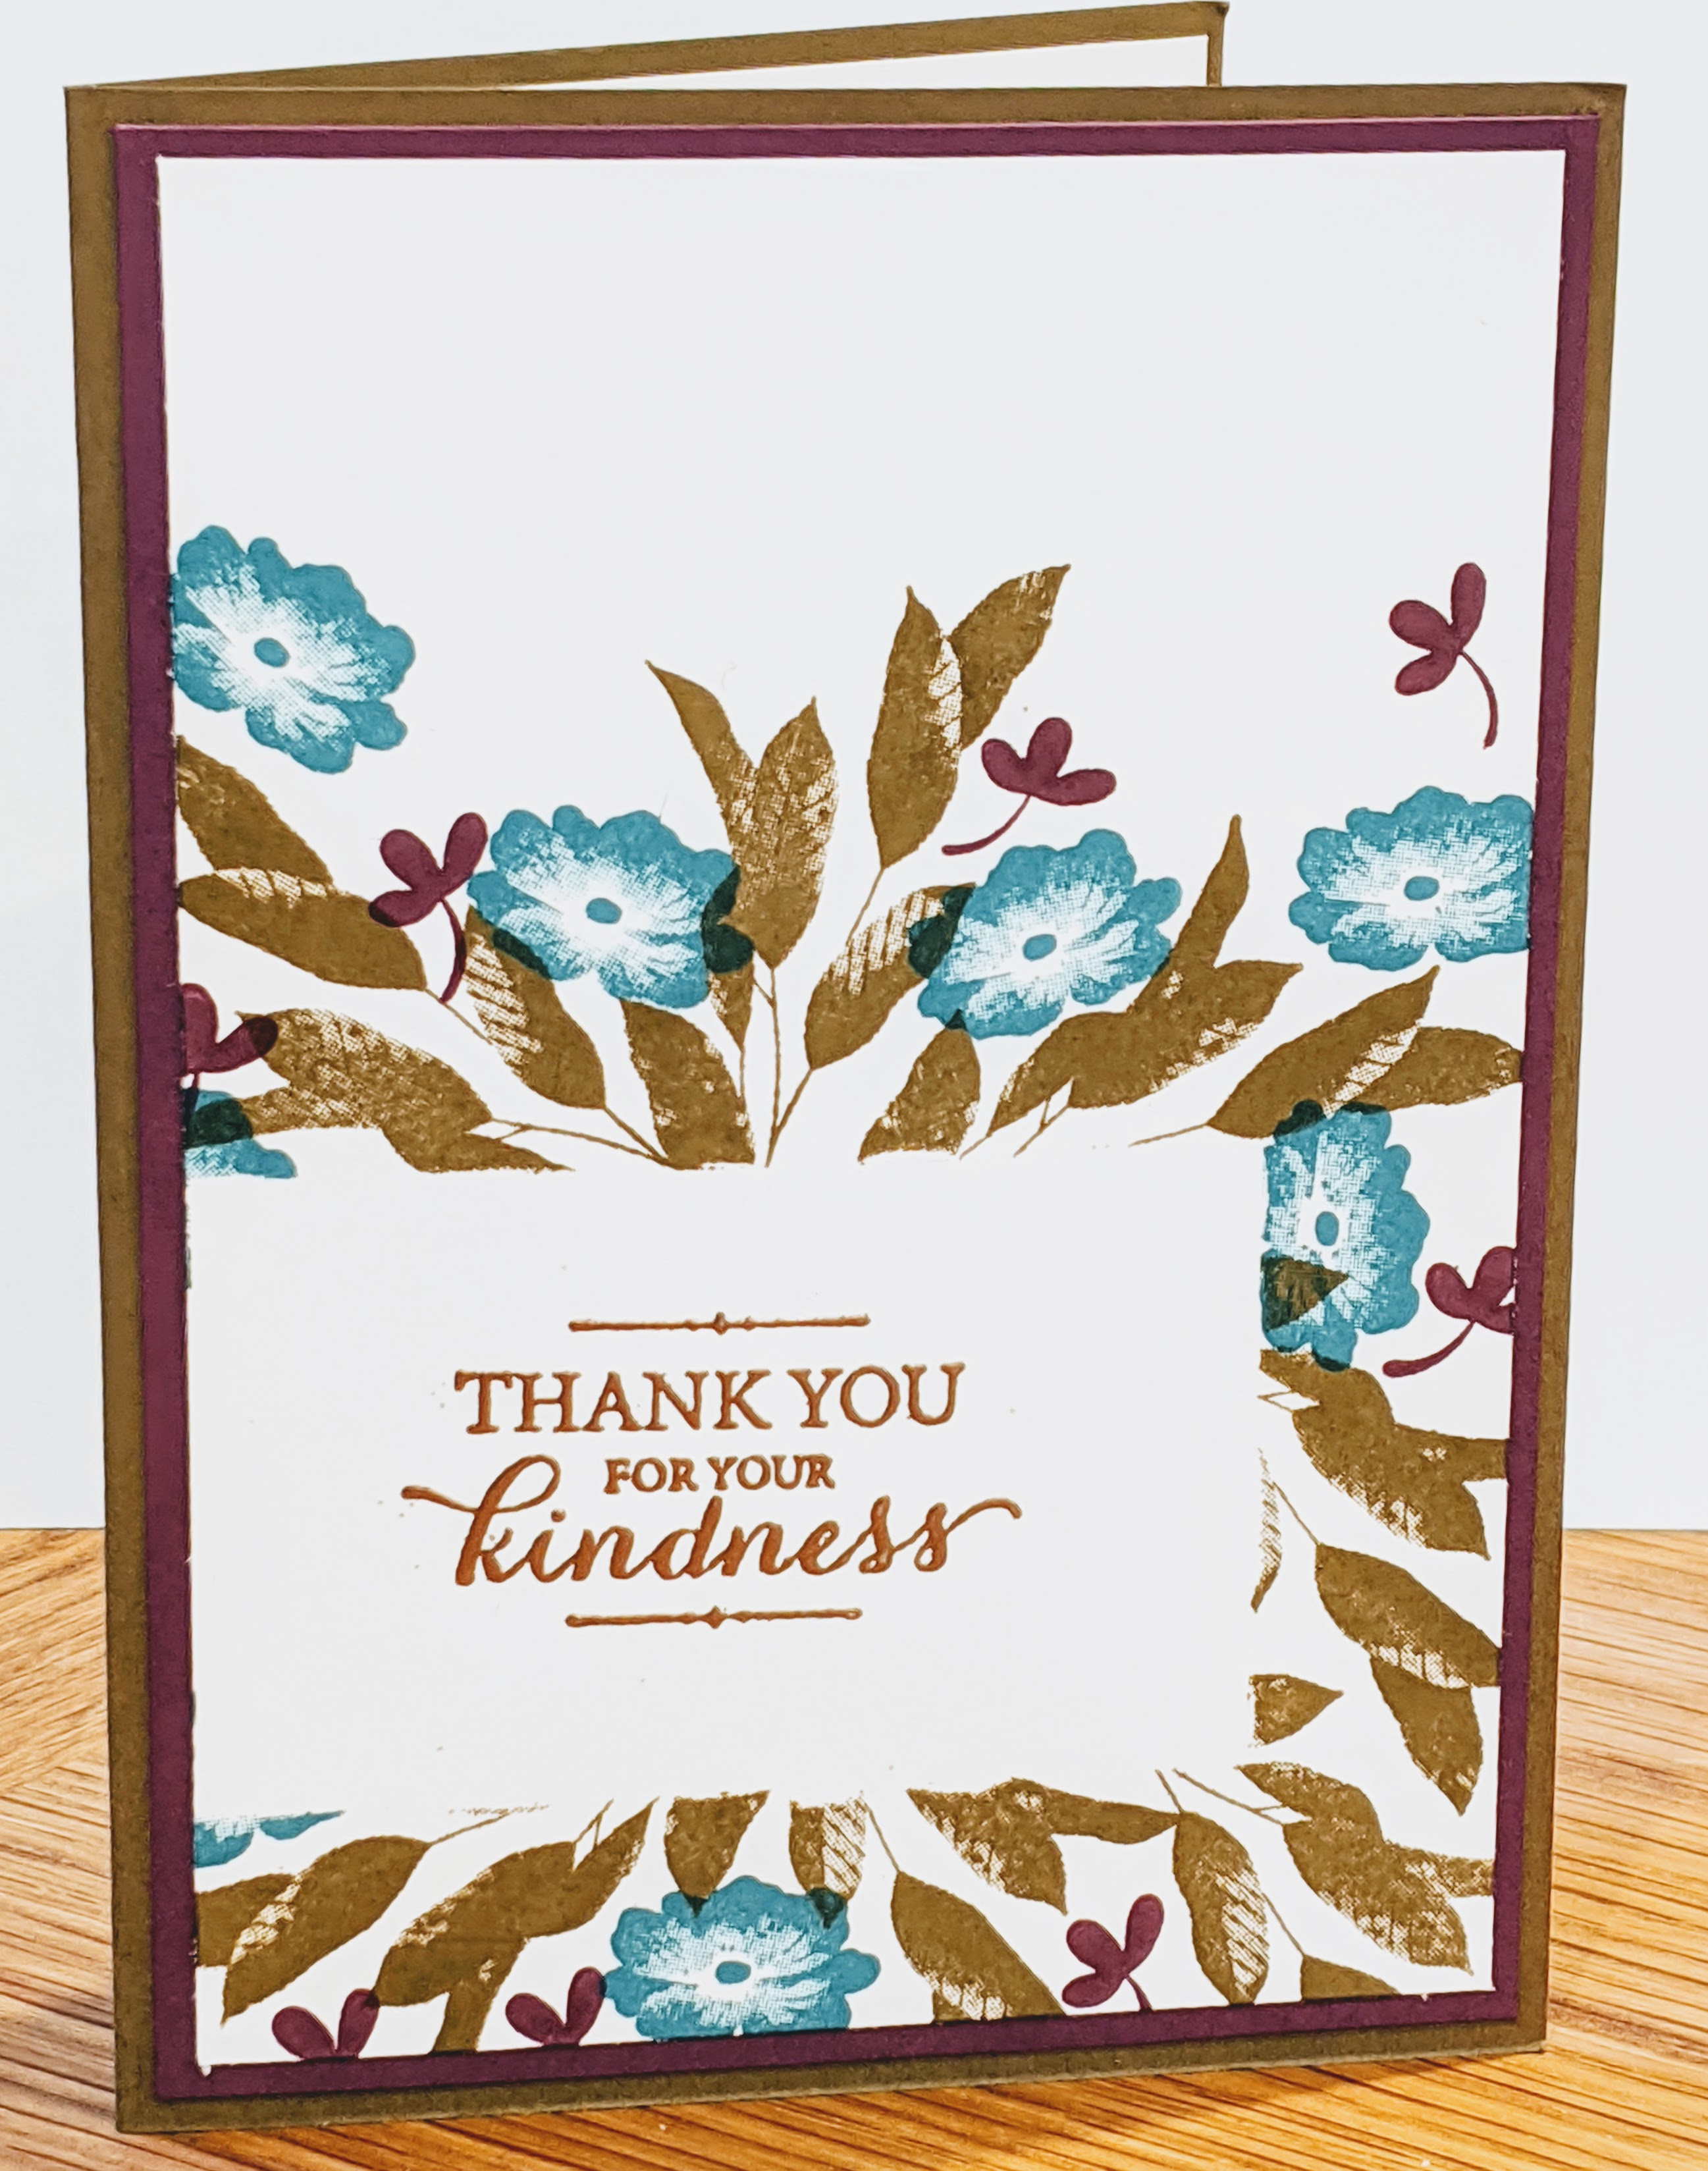 Layered with Kindness stamp set; masking technique, heat emboss